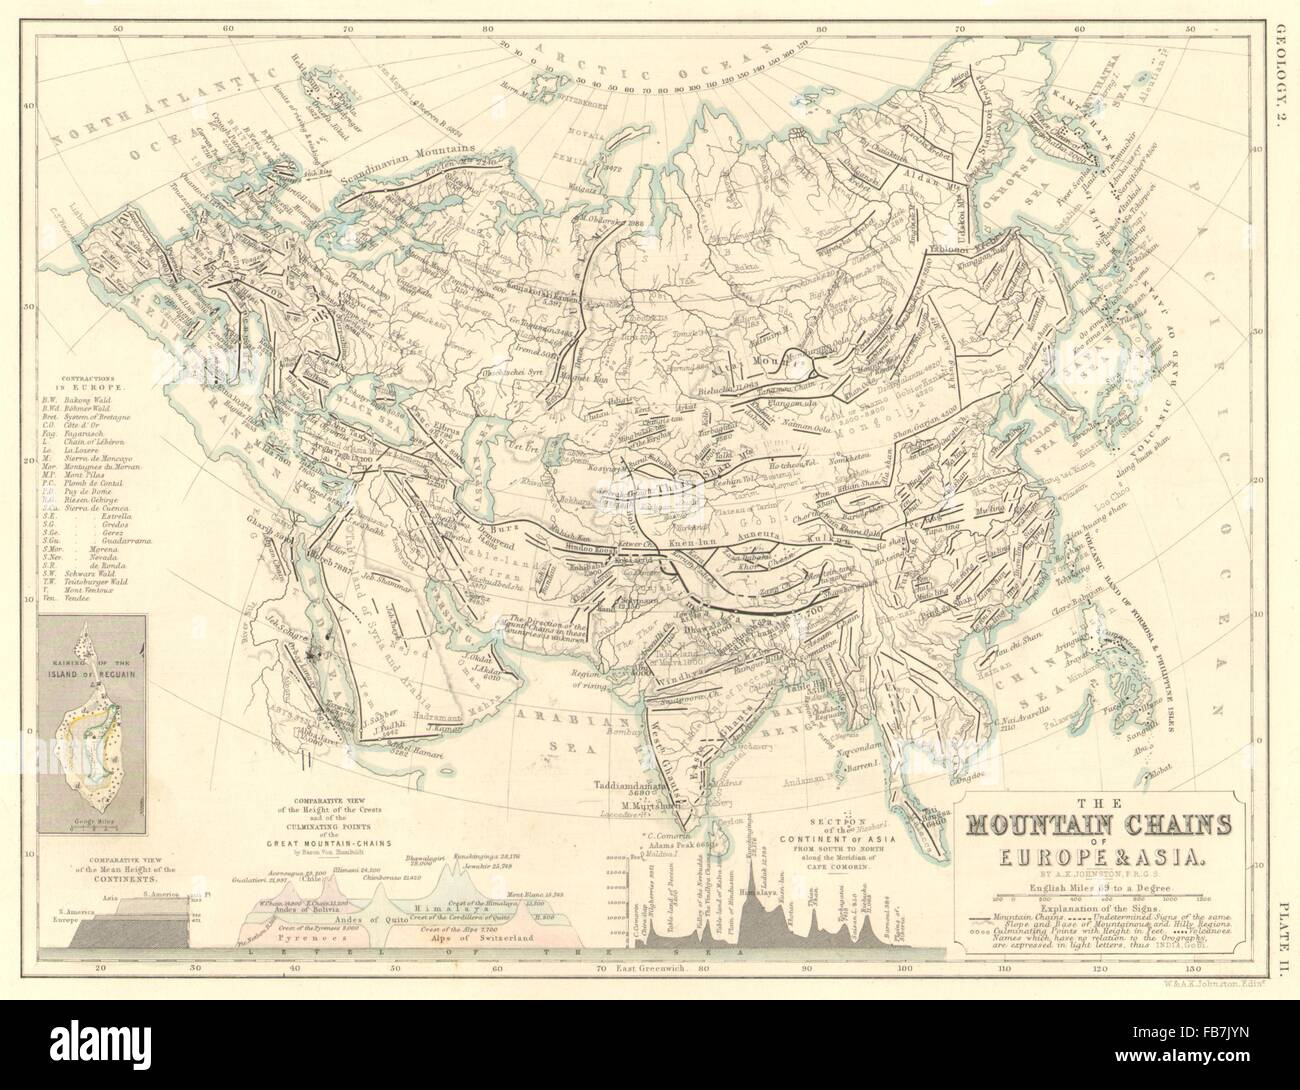 EUROPE & ASIA: The mountain chains of Europe and Asia, 1850 ...